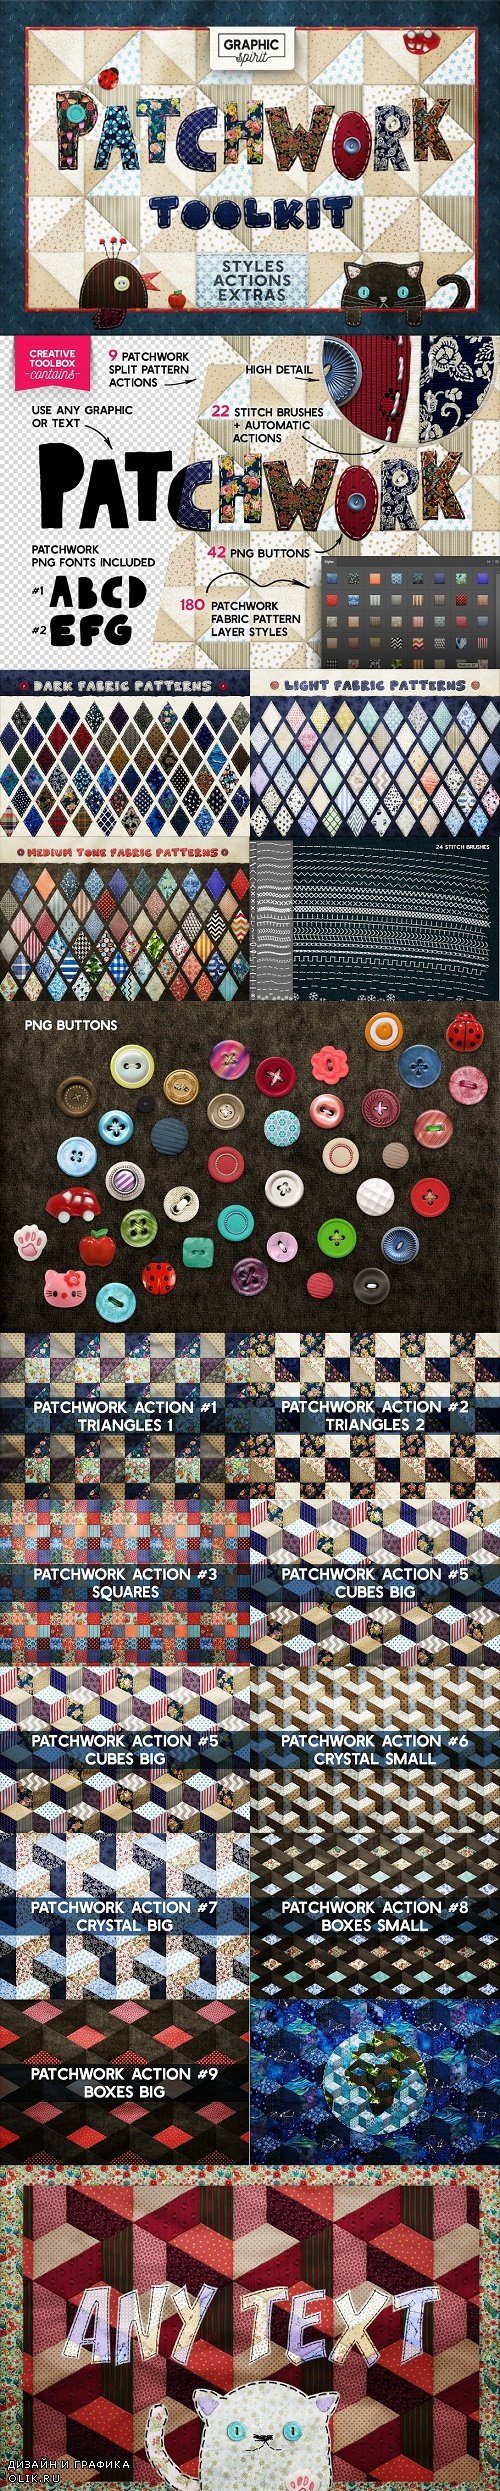 Patchwork Effect PHSP Toolkit - 2489840